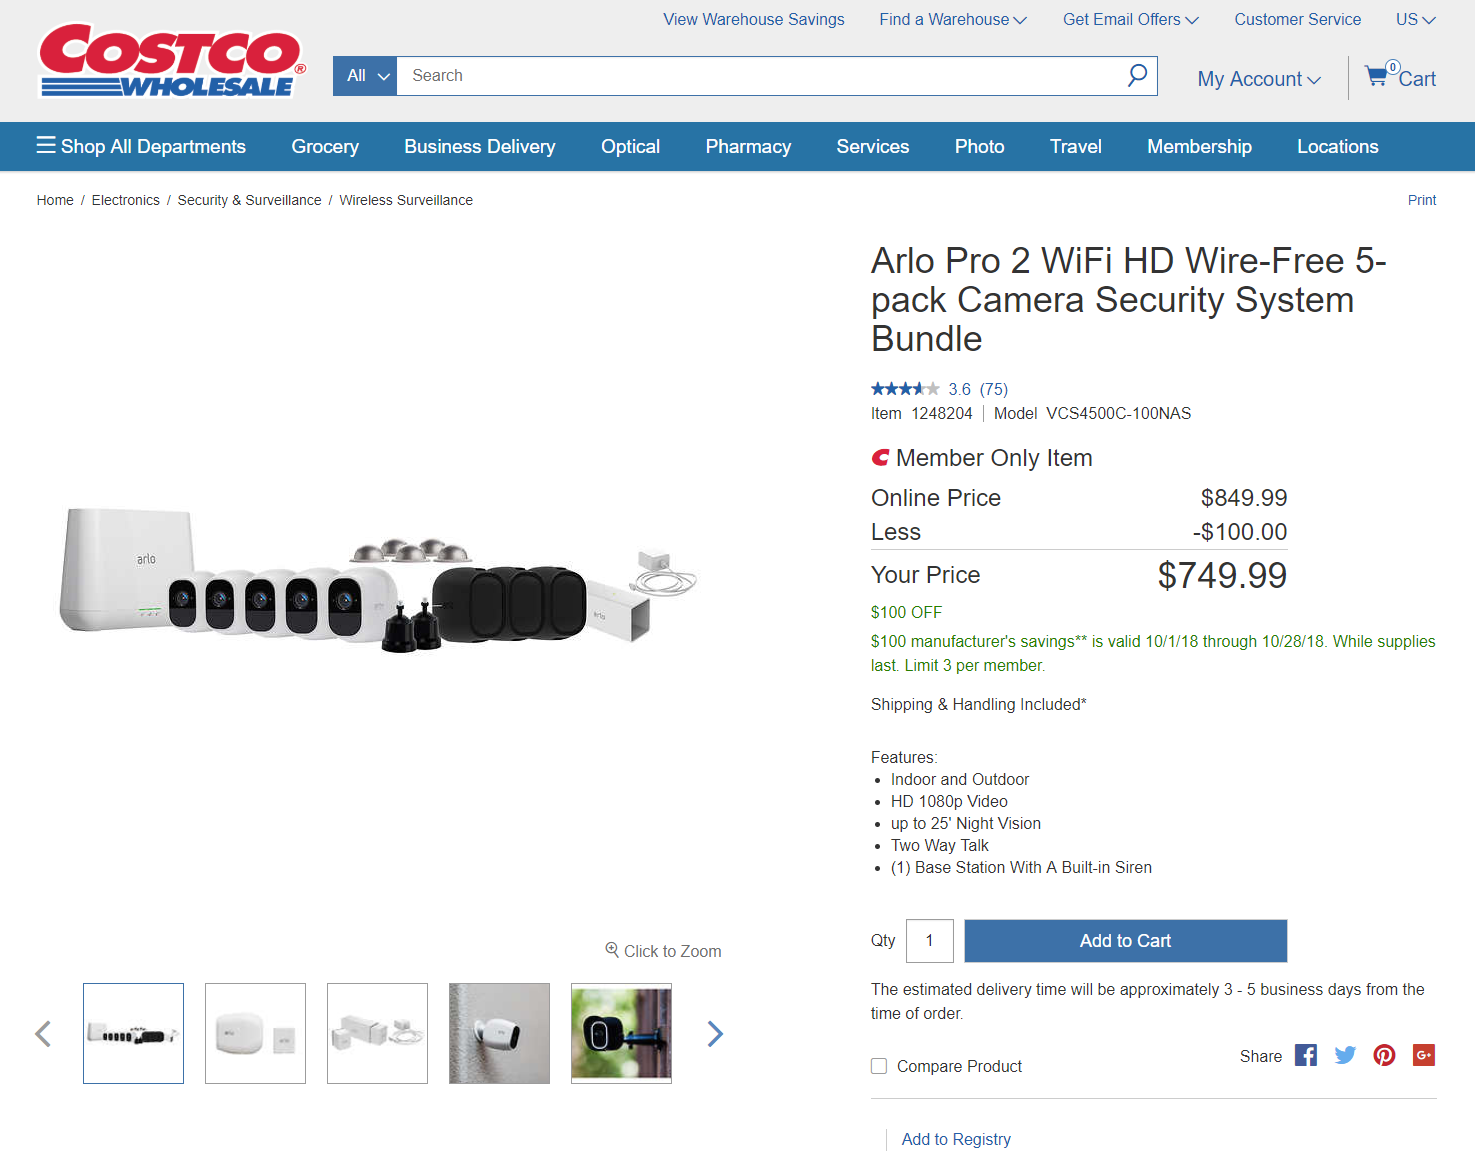 Deal Alert] Arlo Pro 2 bundle $750 at Costco ($100 off)